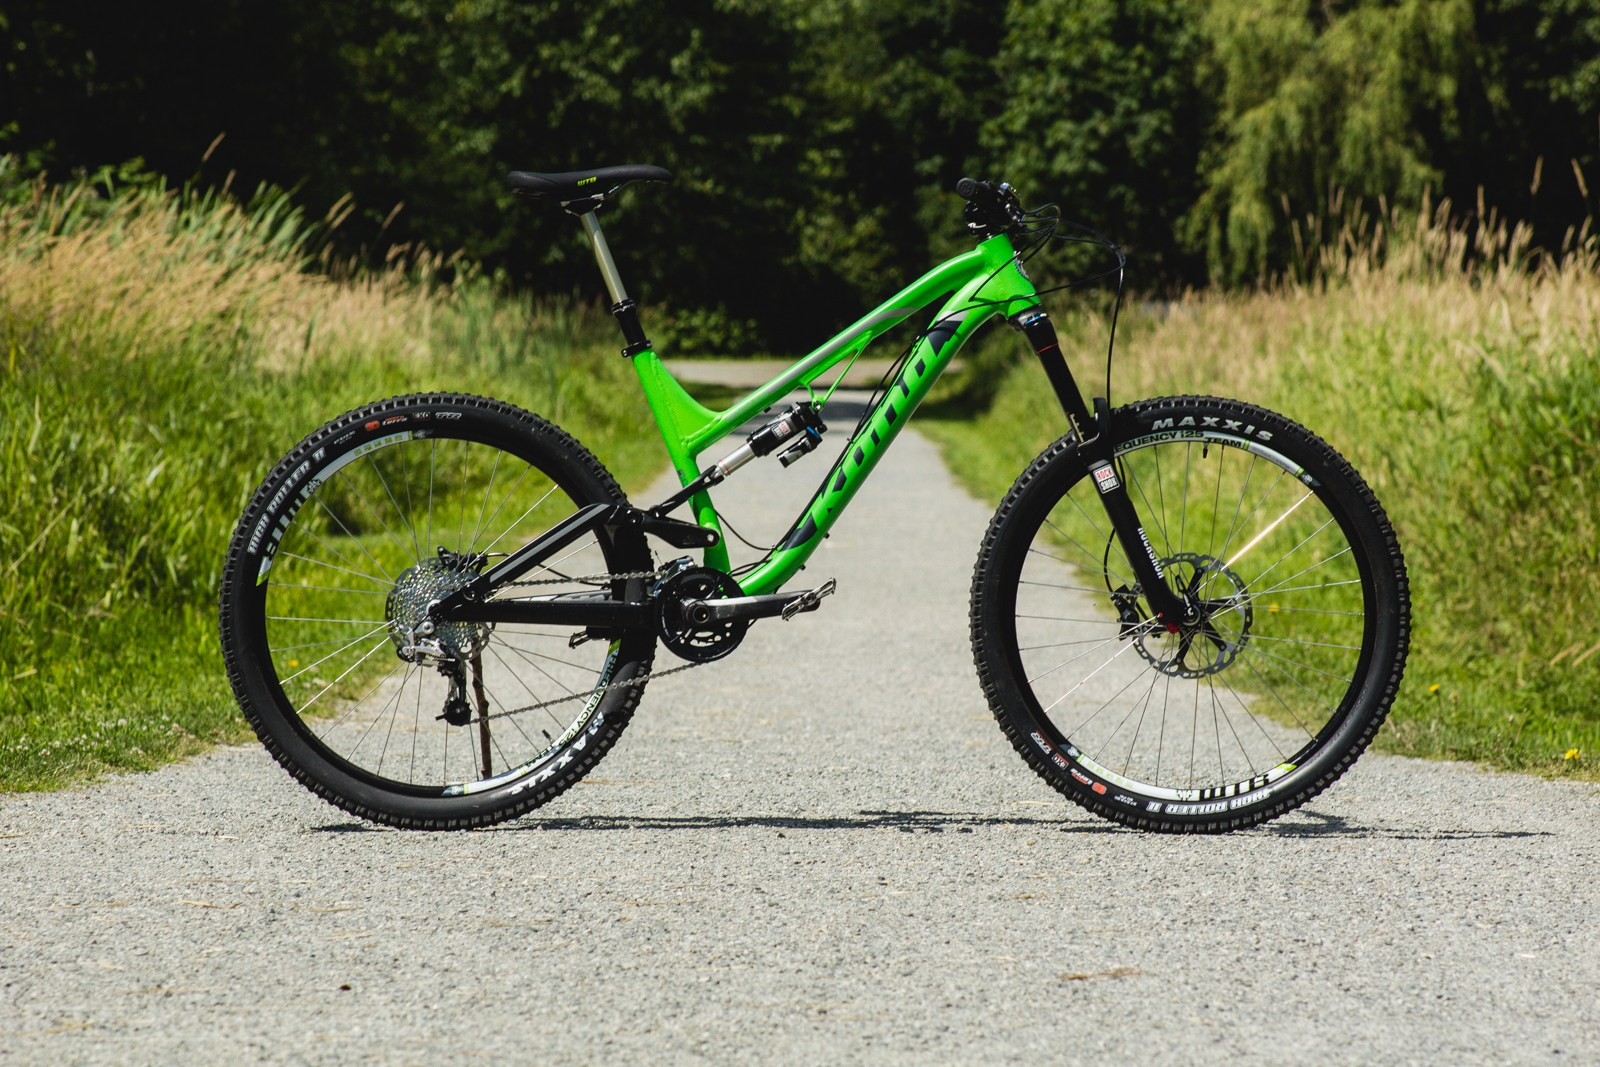 The 2014 Kona Process 153A in all its green glory...